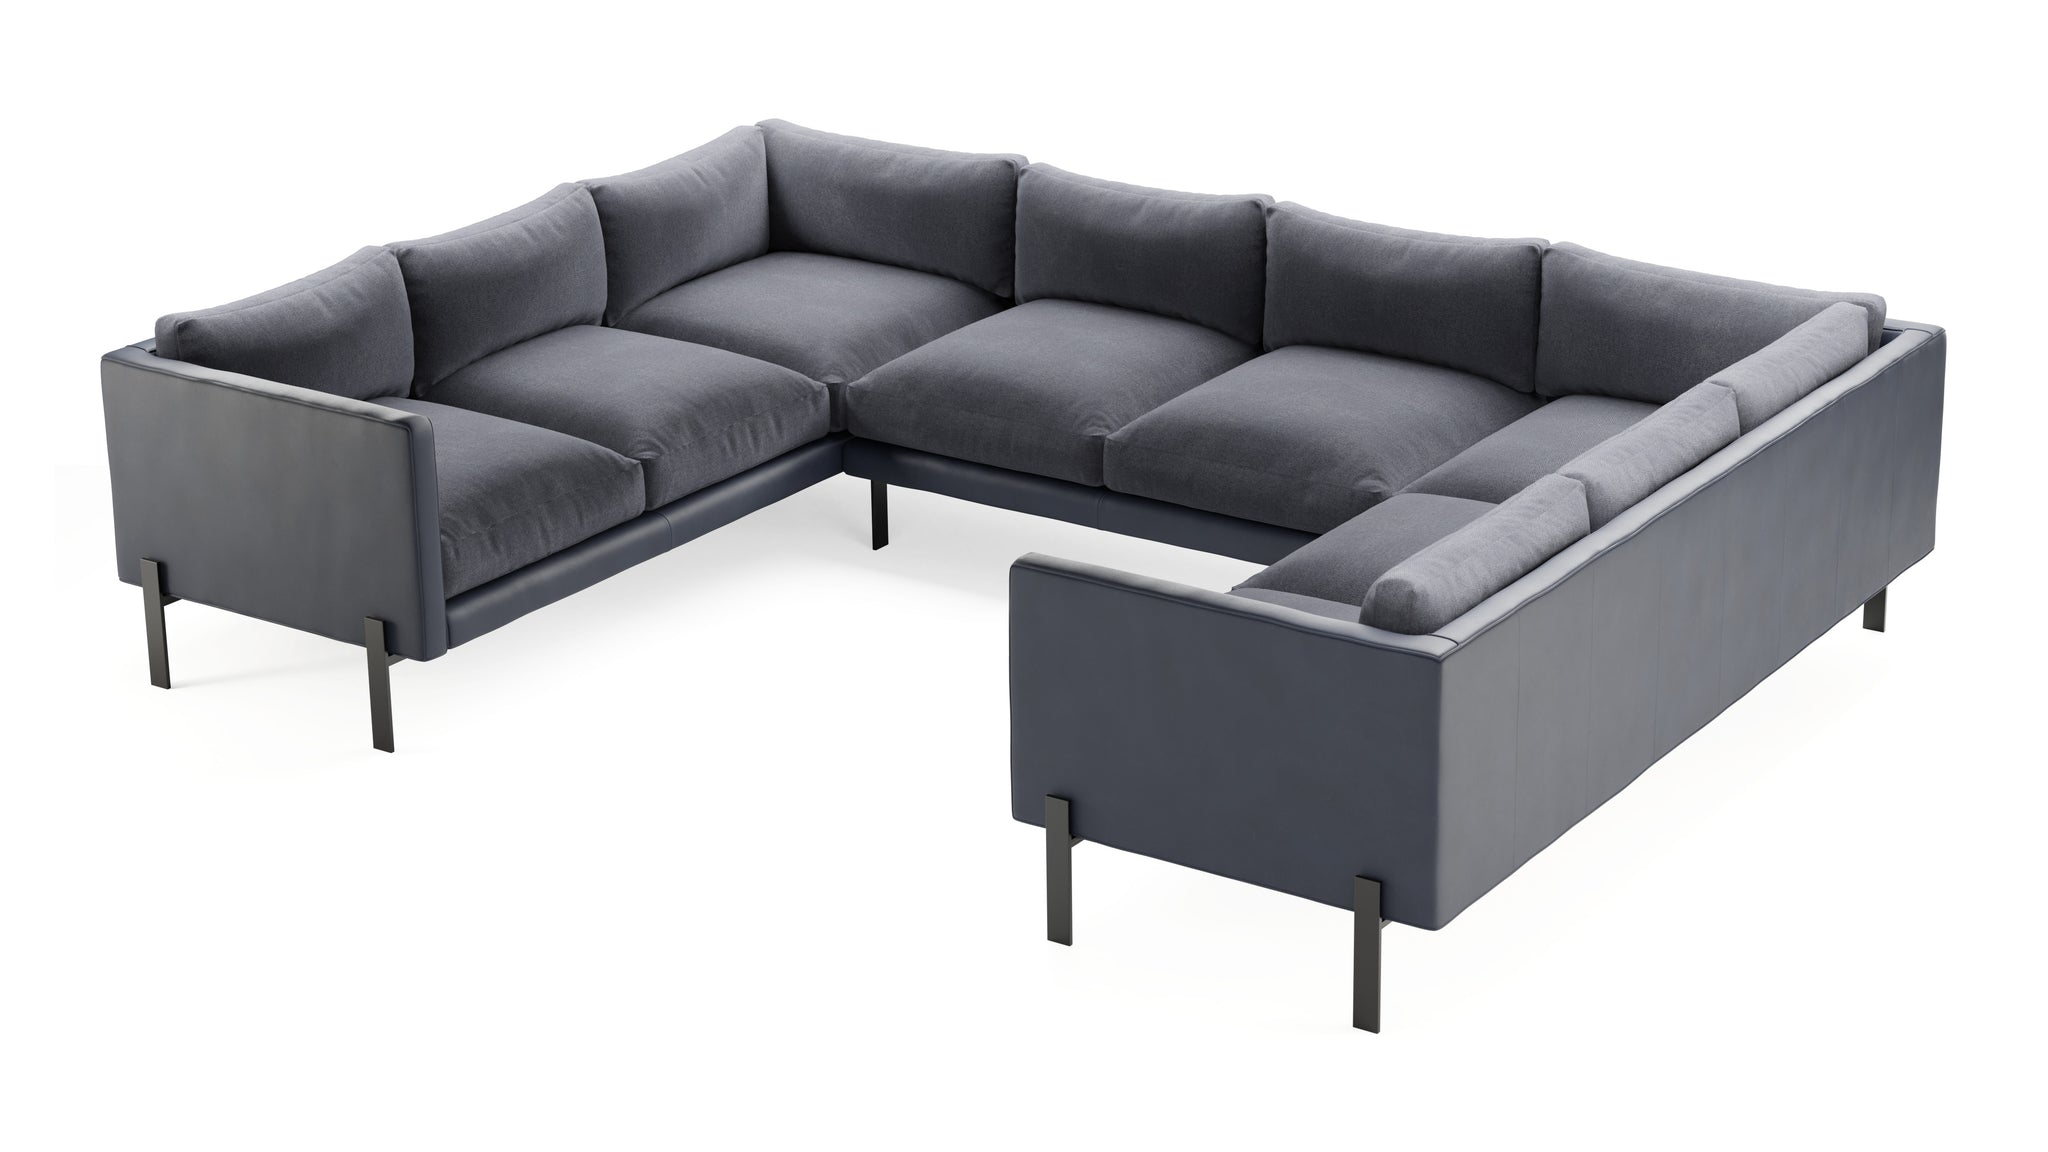 Truss U-Shaped Sectional